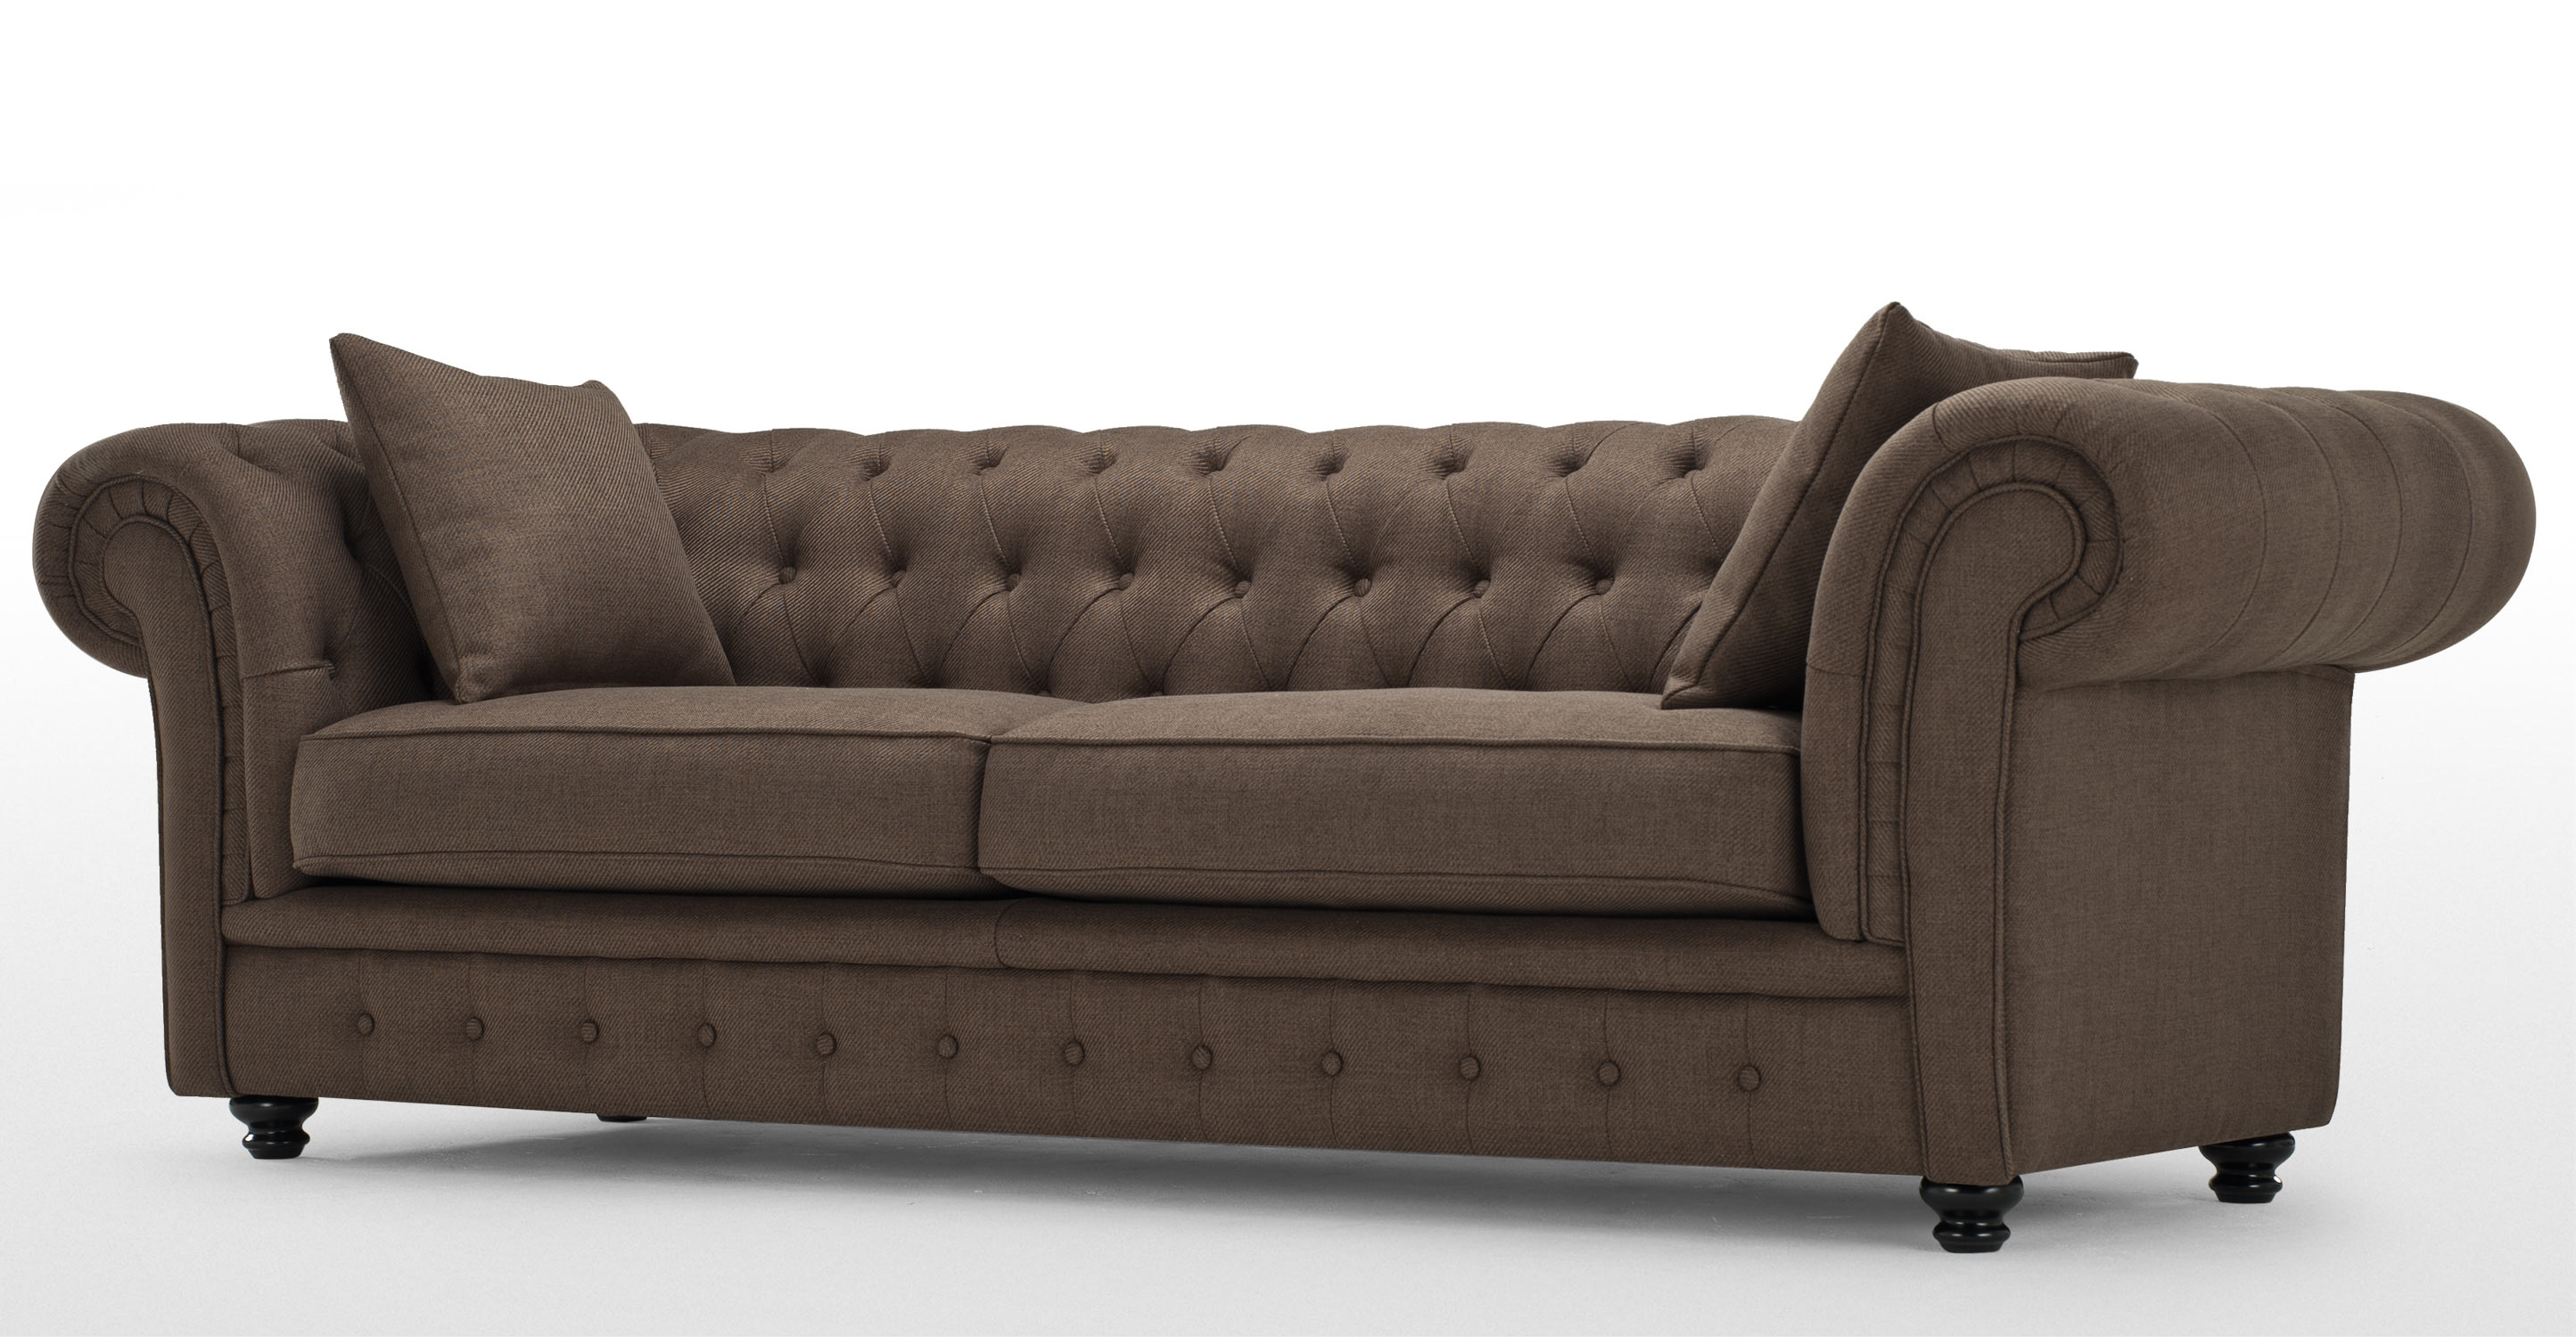 branagh 3 seater brown chesterfield sofa. Black Bedroom Furniture Sets. Home Design Ideas